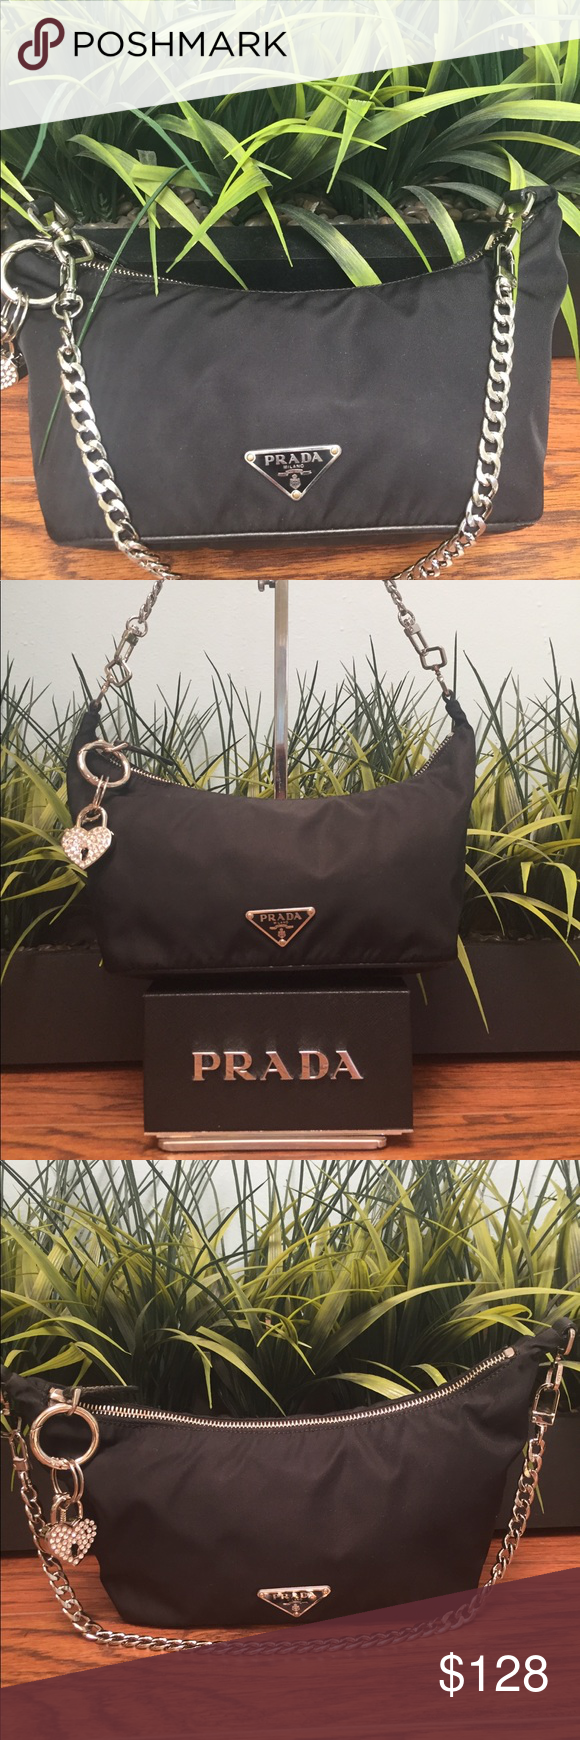 b233f69c55c430 Authentic Prada Tessuto Sirio Black w/authenticity This is a Prada  Semitracolla nylon bag from the group Tessuto Sirio. It's black inside and  outside.